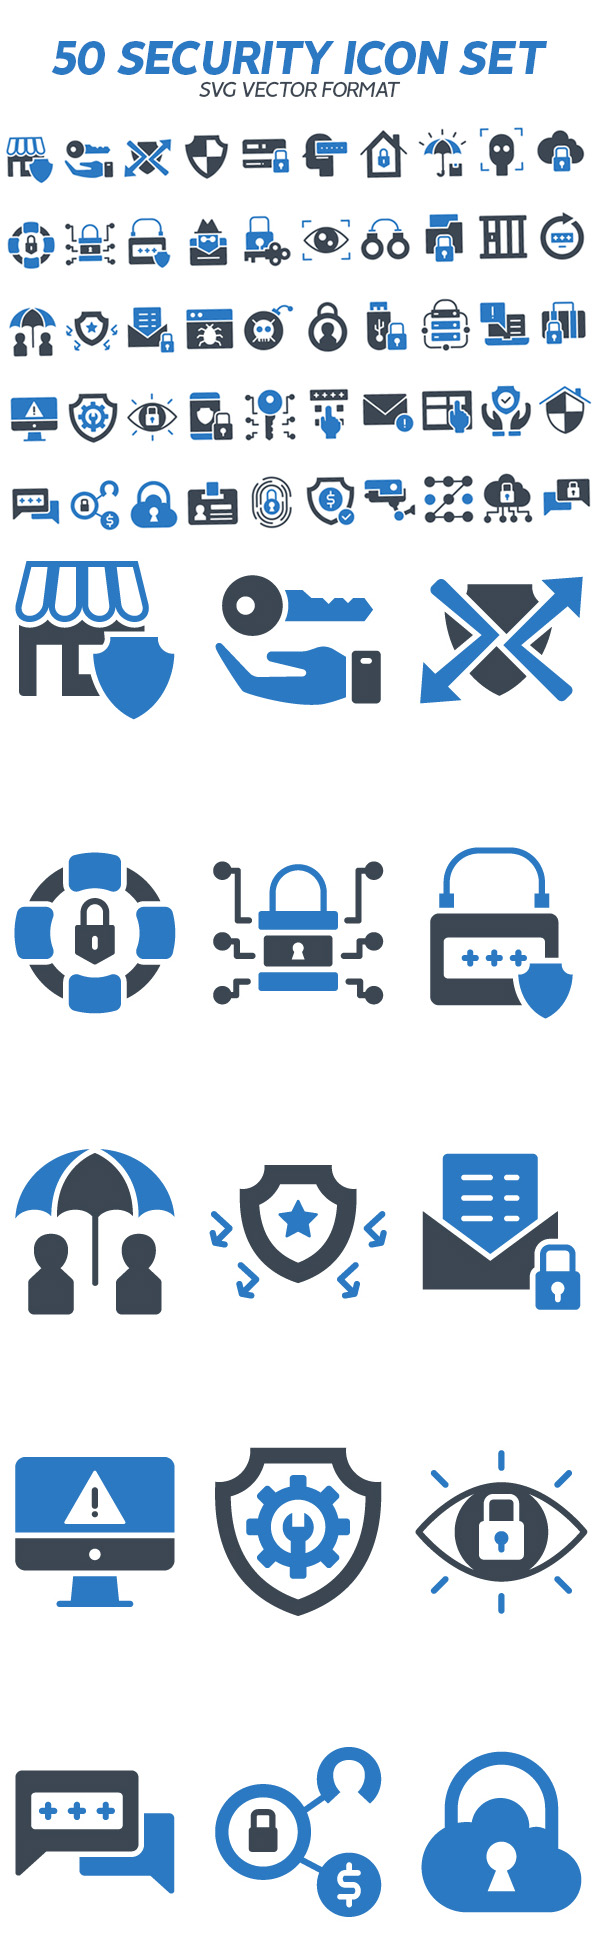 Freebies for 2019: 50 Free Security Vector Icon Set (SVG)